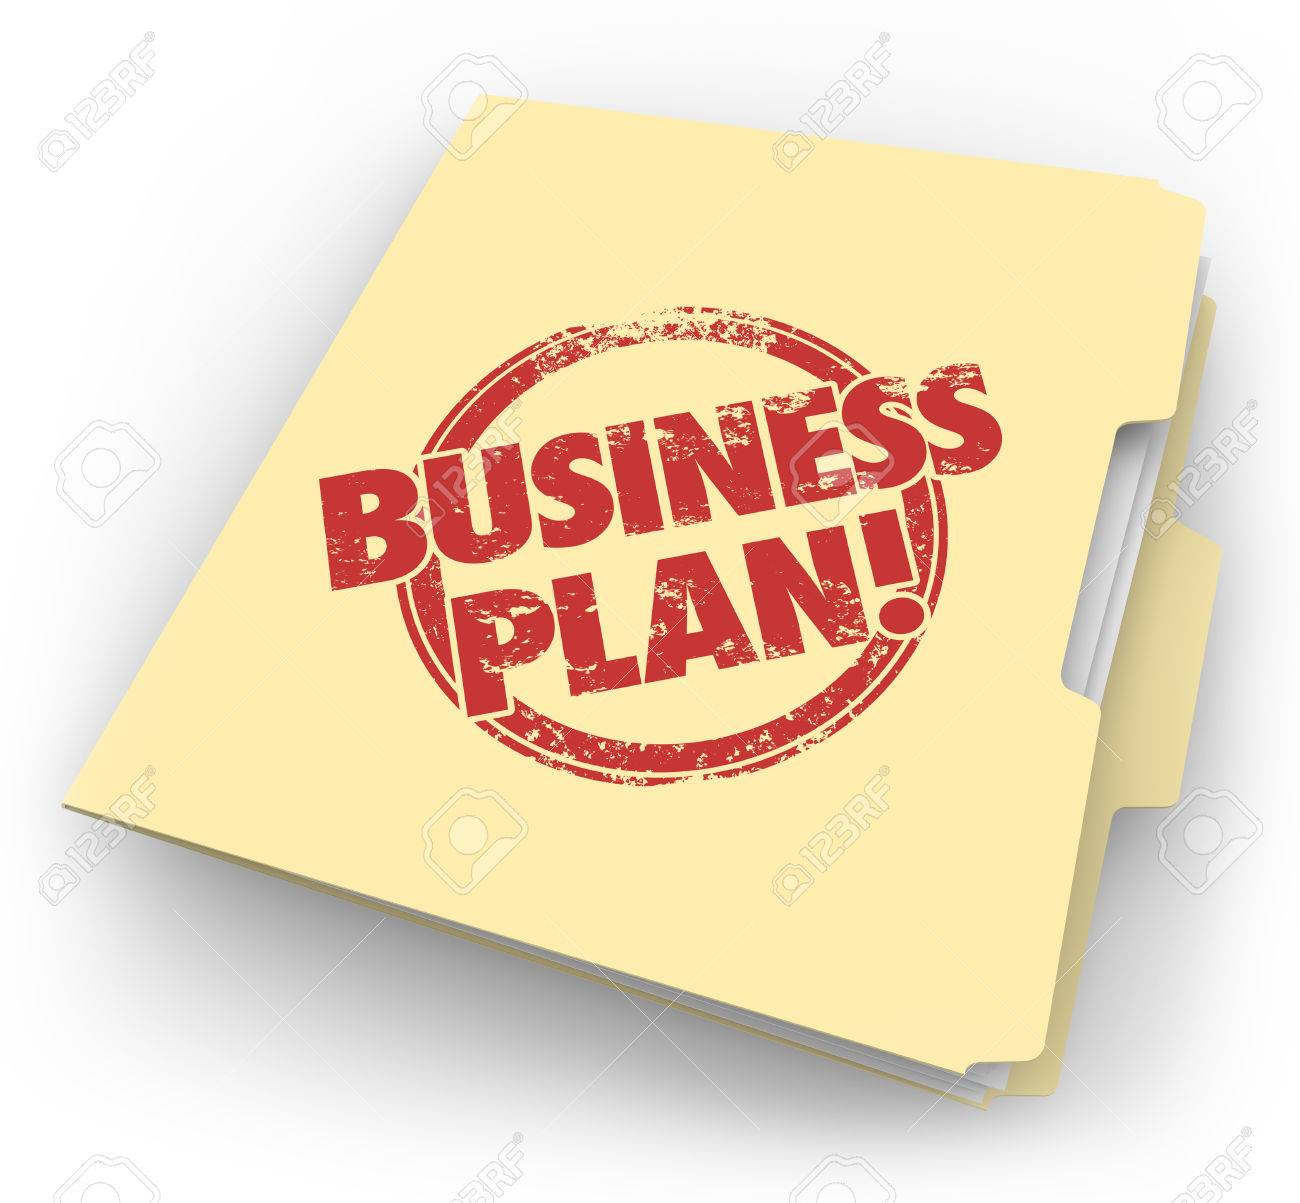 Business Plan Words In Red Grunge Style Stamp On A Manila Folder ...